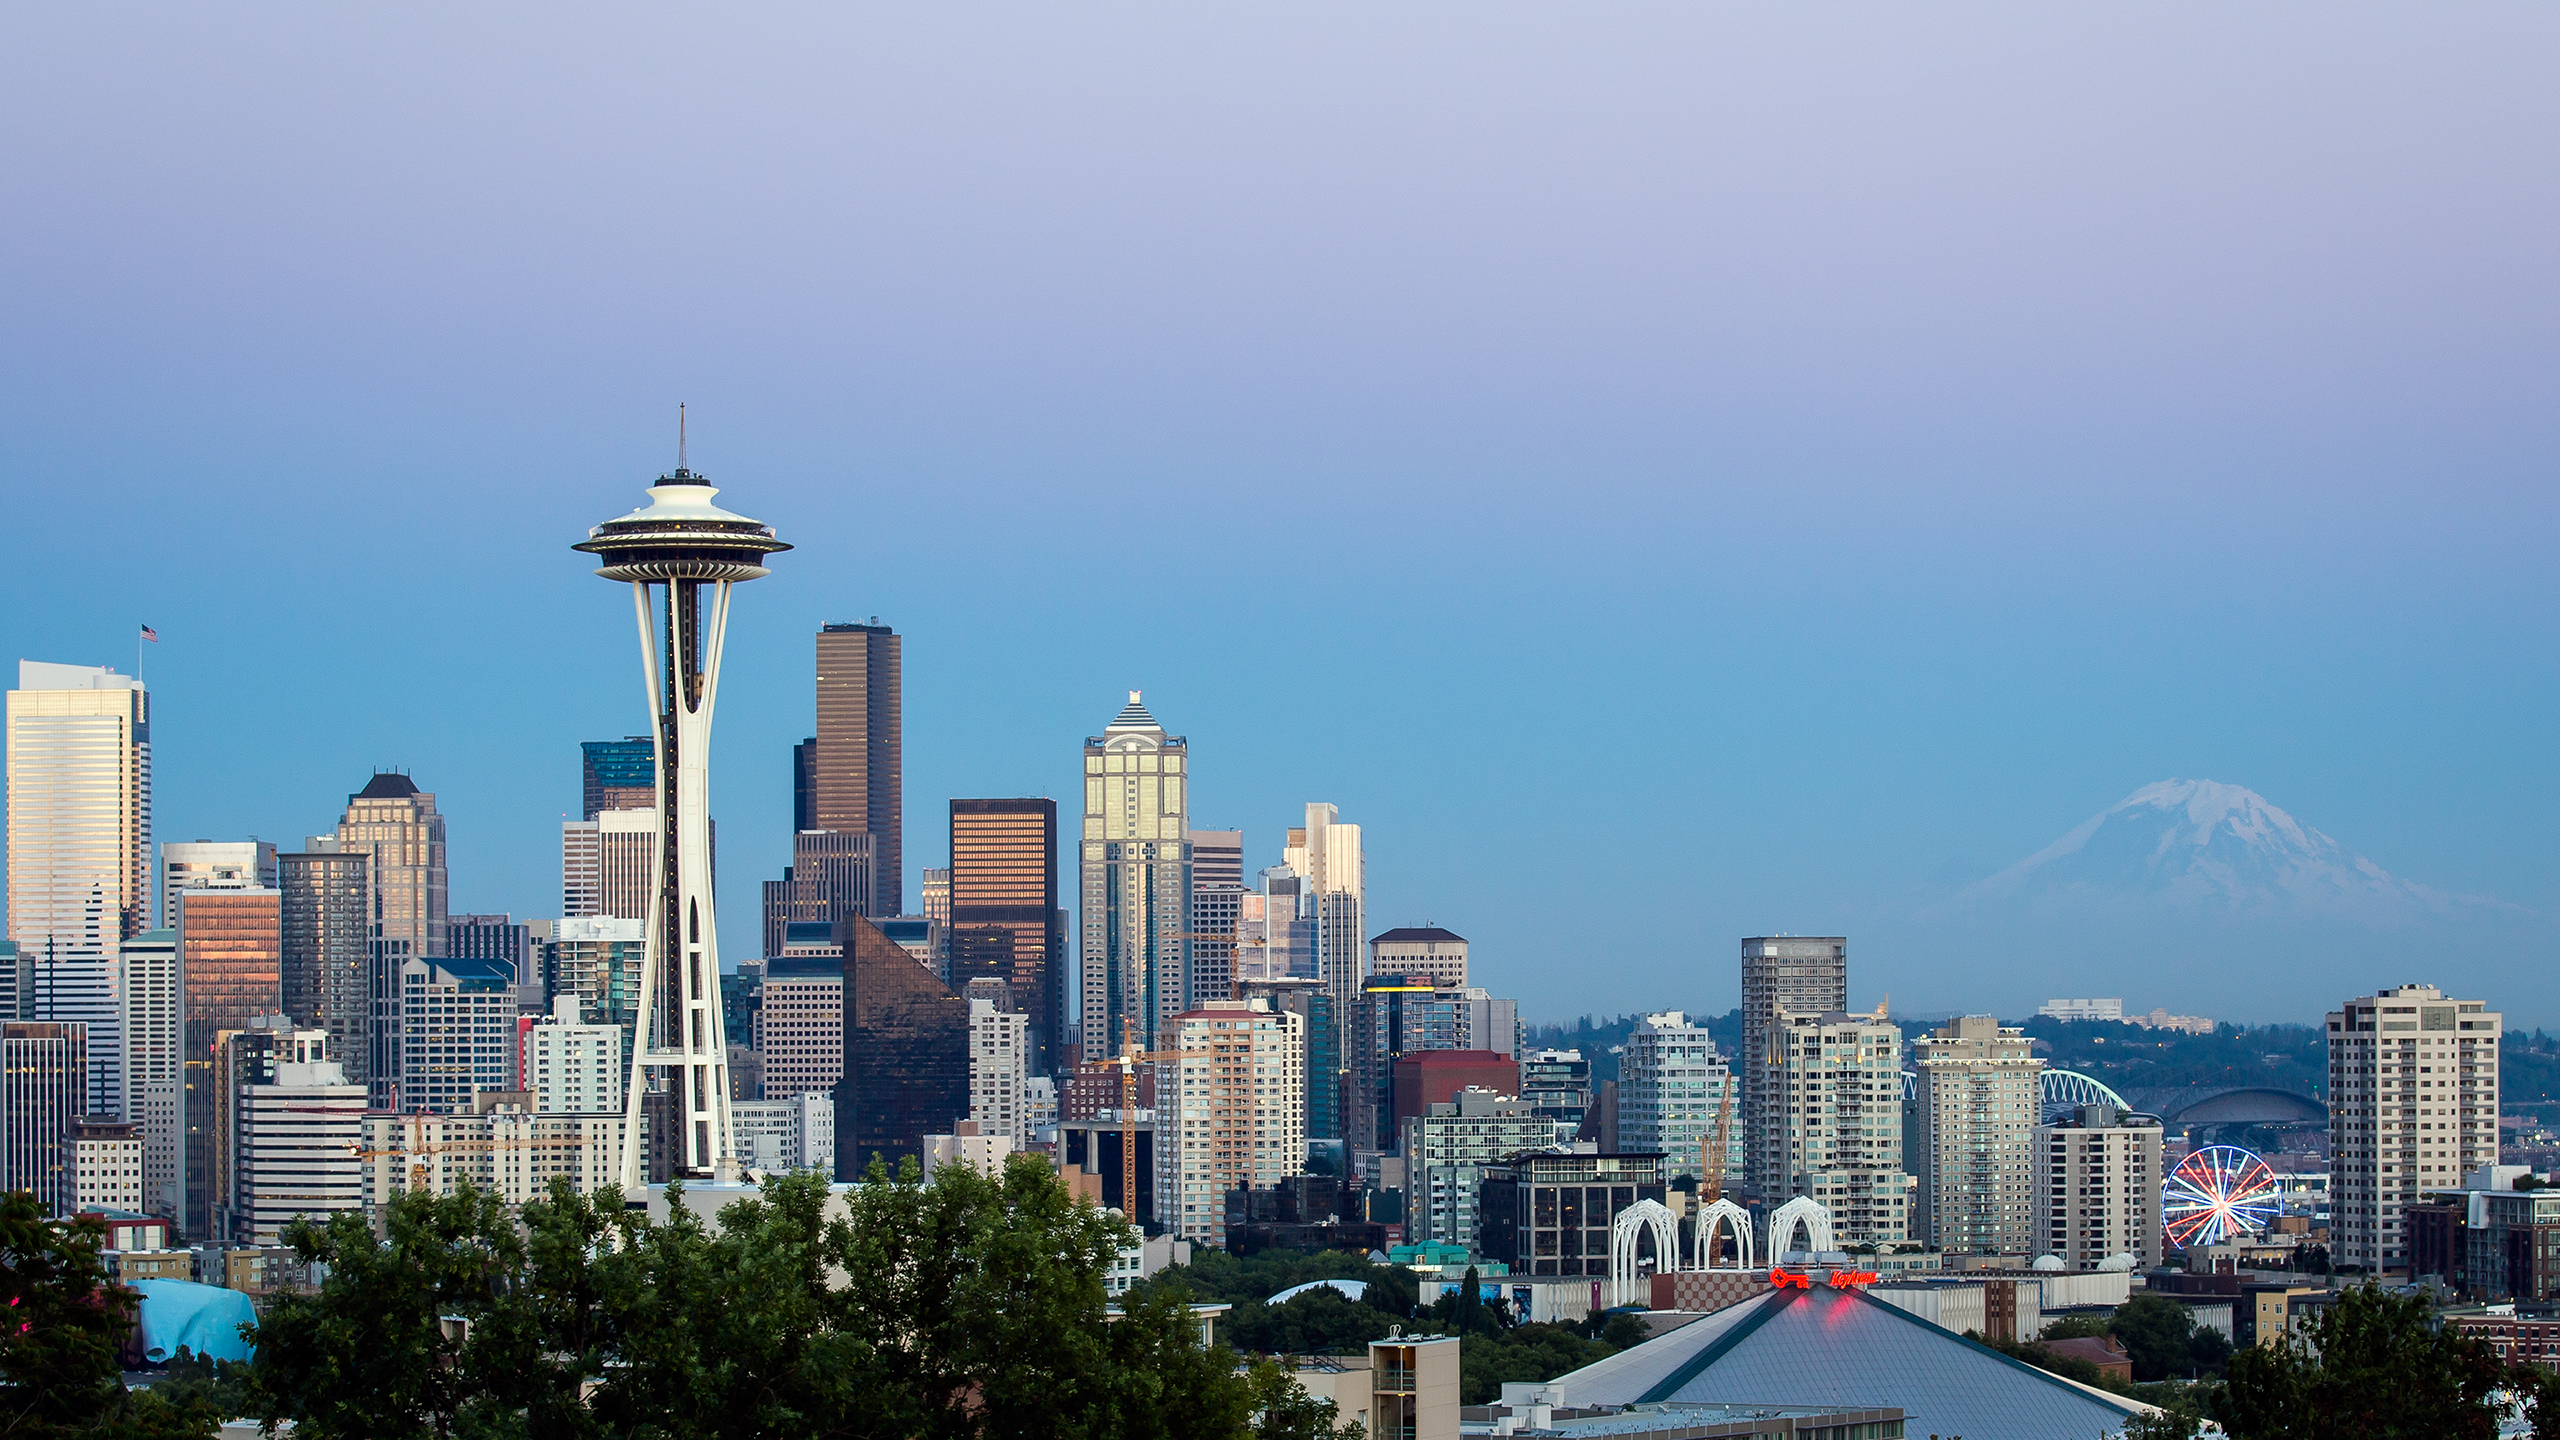 iconic_seattle_wallpaper_2560x1440